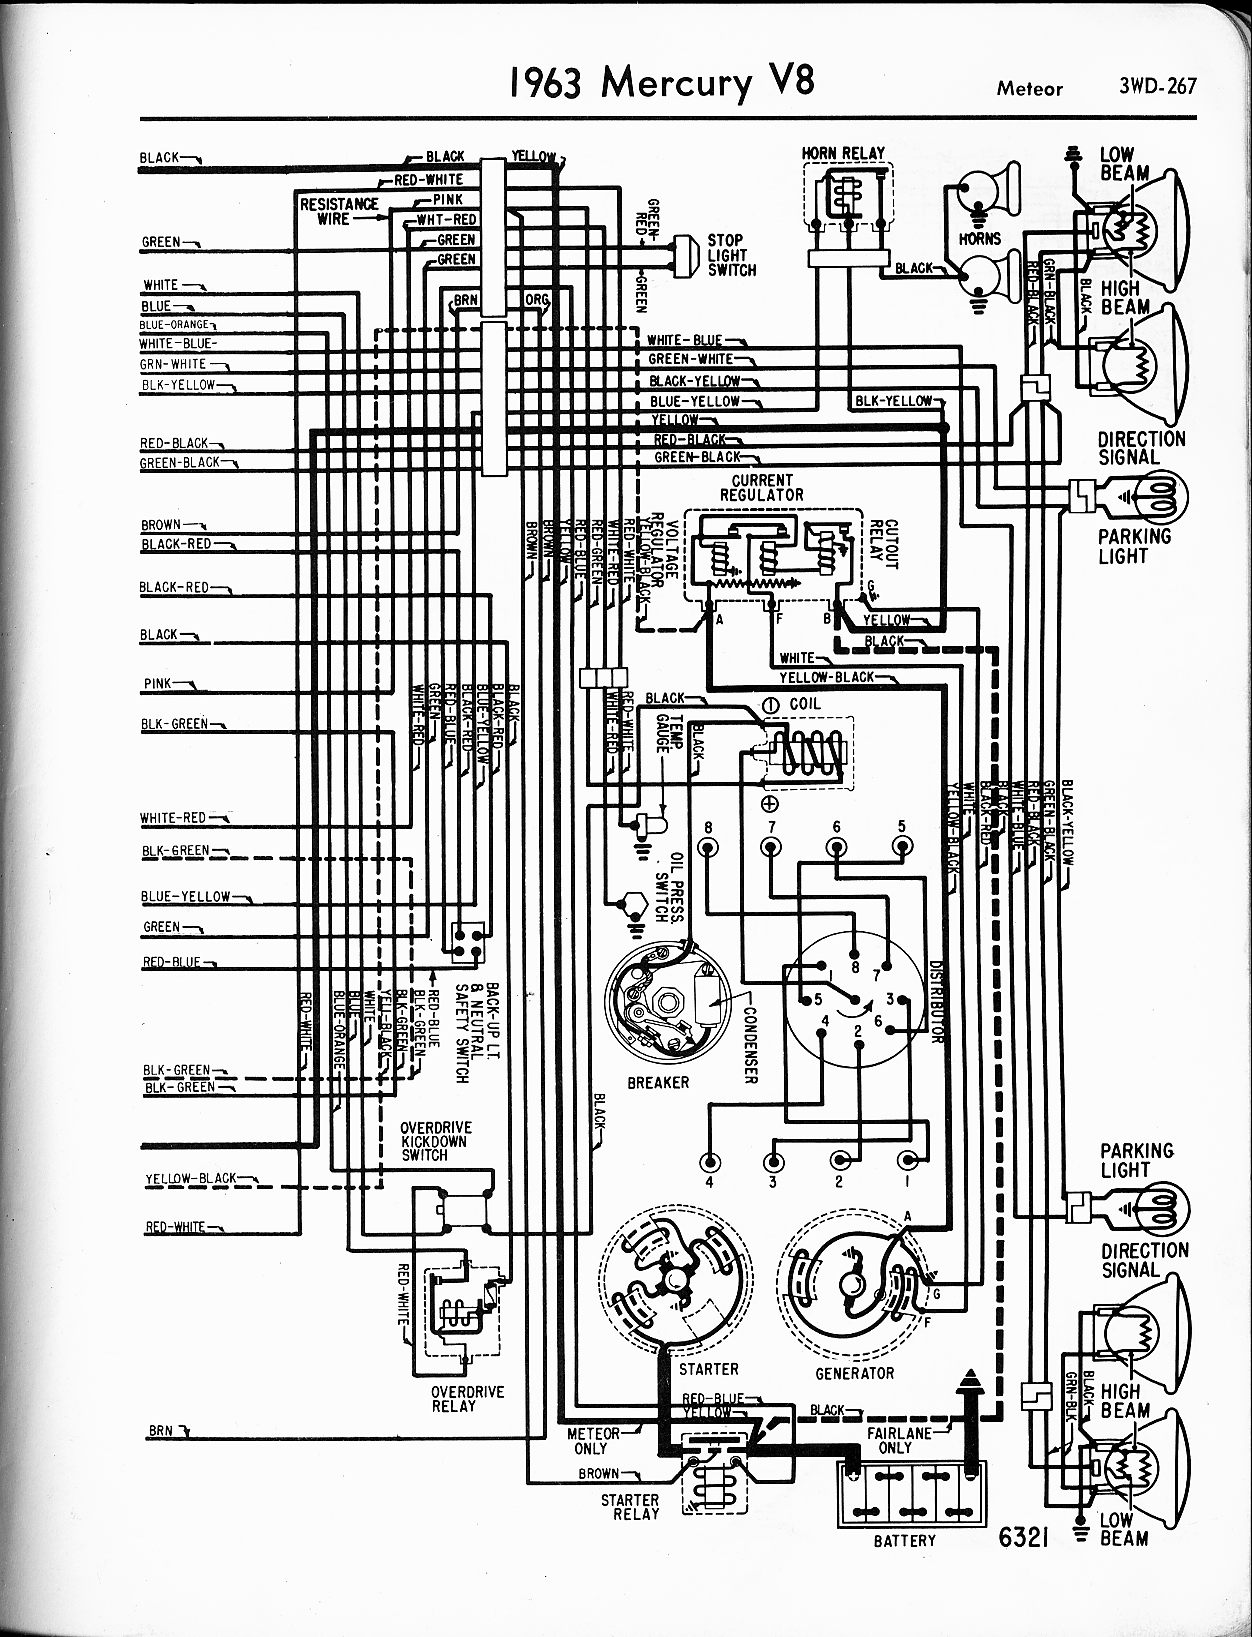 starter wire diagram 1992 chevy truck chevrolet wiring diagrams Tilt Trim Wiring Diagram mercury wiring diagrams the old car manual project 1963 v8 meteor right page chevrolet